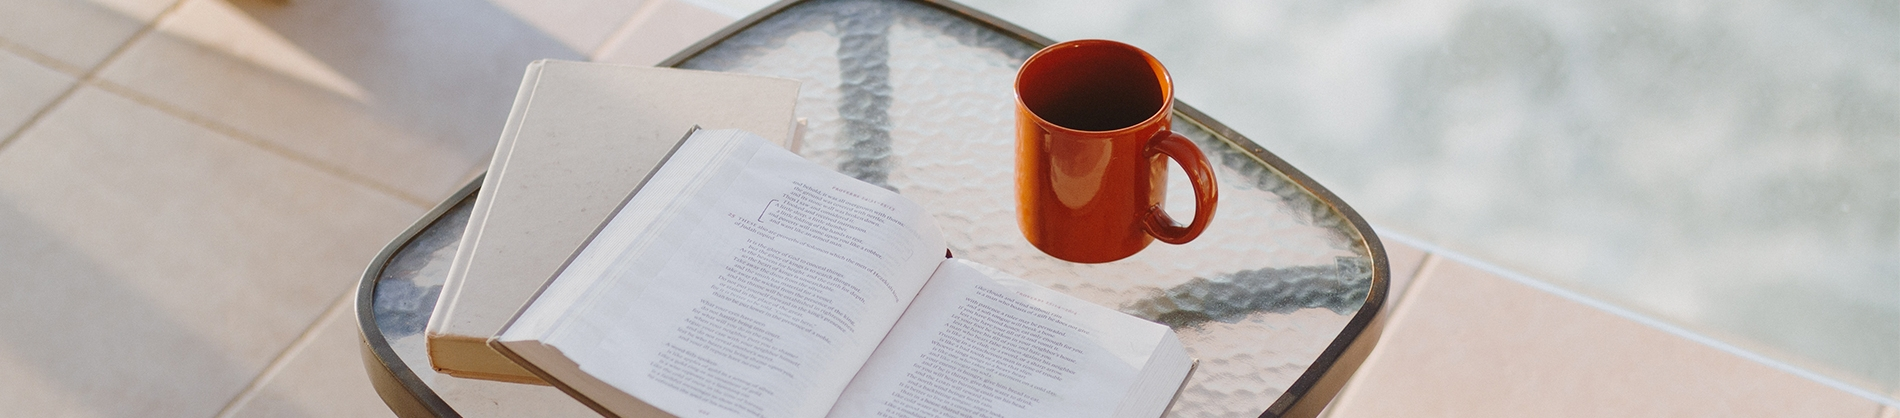 Open bible, notebook and cup of coffee on a glass table by the pool